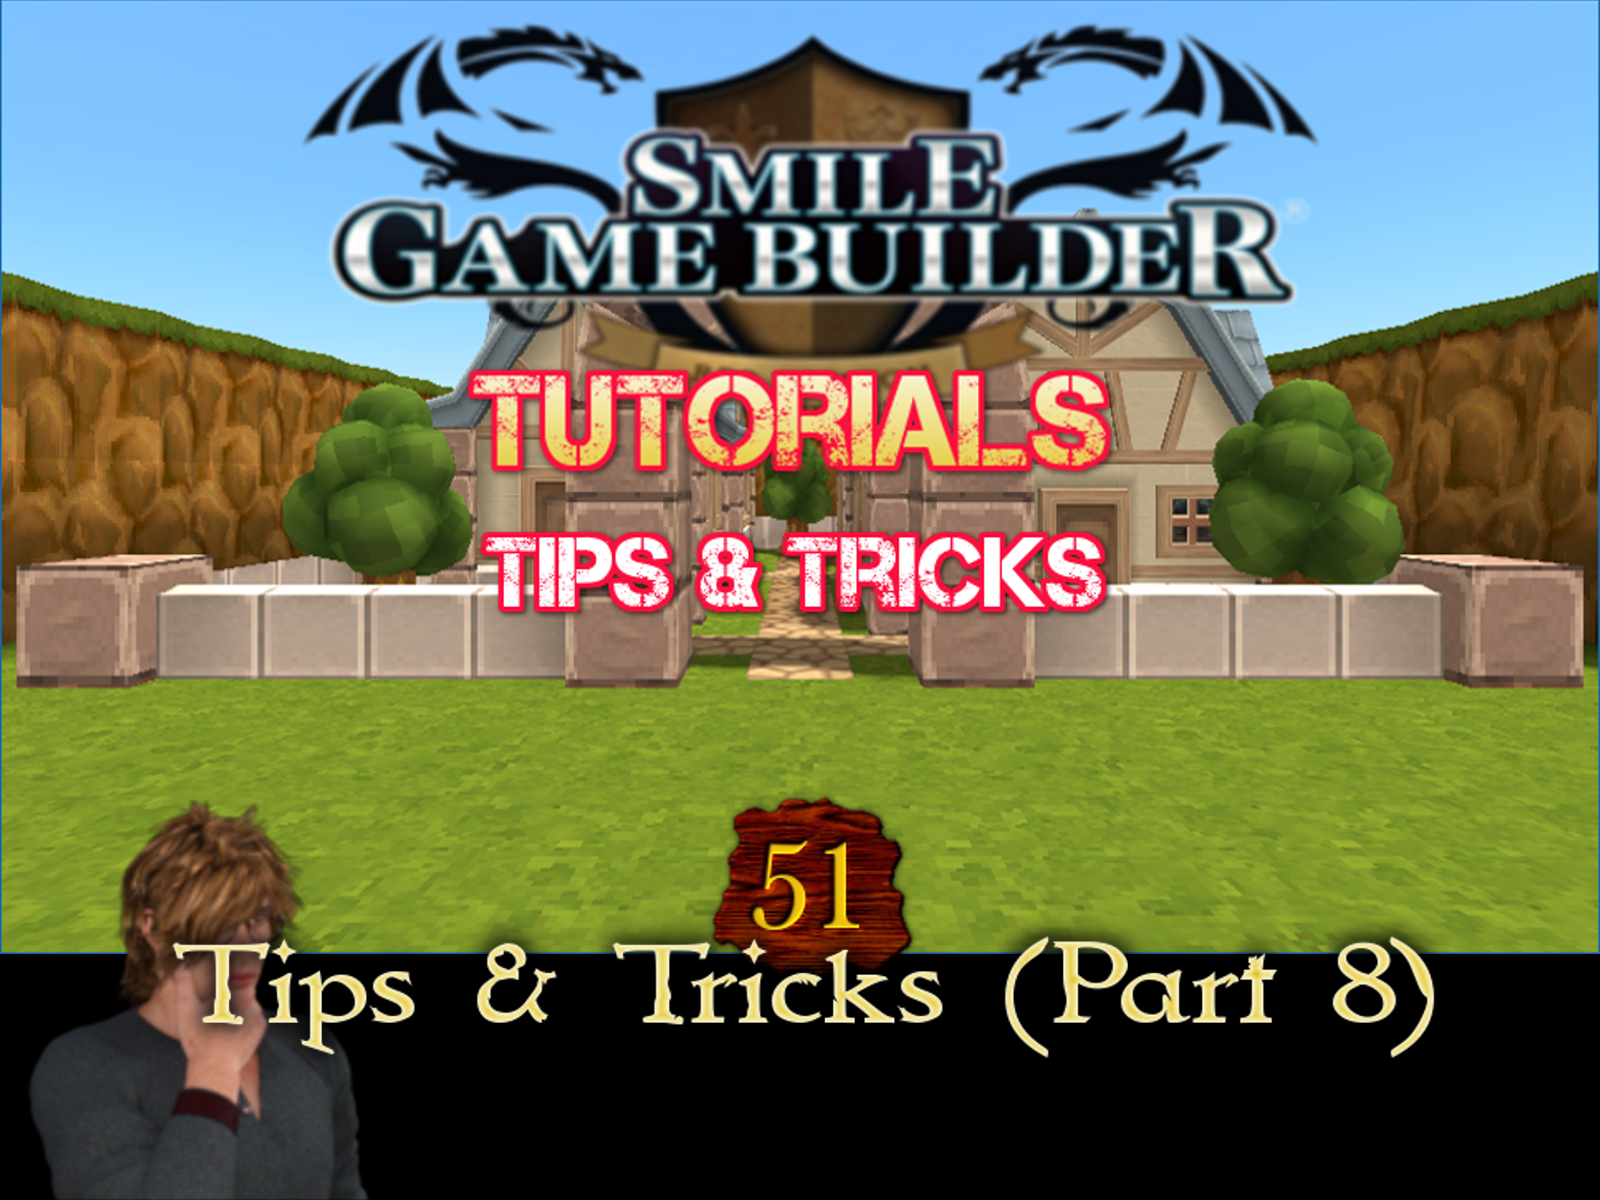 Smile Game Builder Tutorial 51 - Tips & Tricks (Part 8)